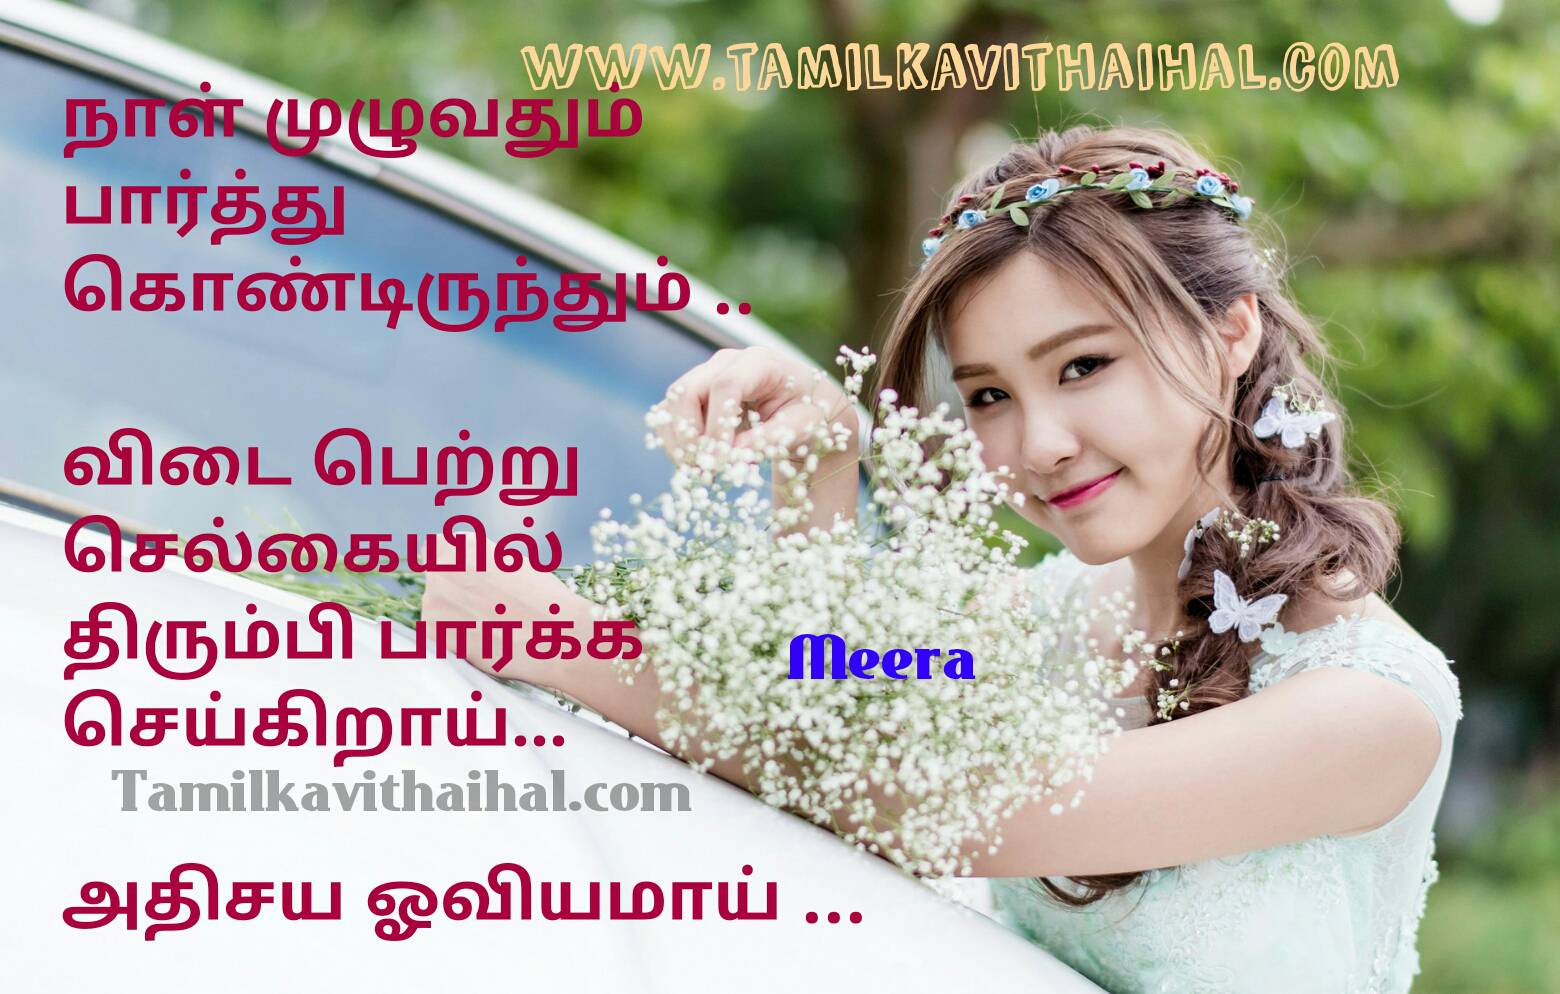 Cute new love tamil feel romance boy feel oviyam painting girl meera quotes wallpaper download